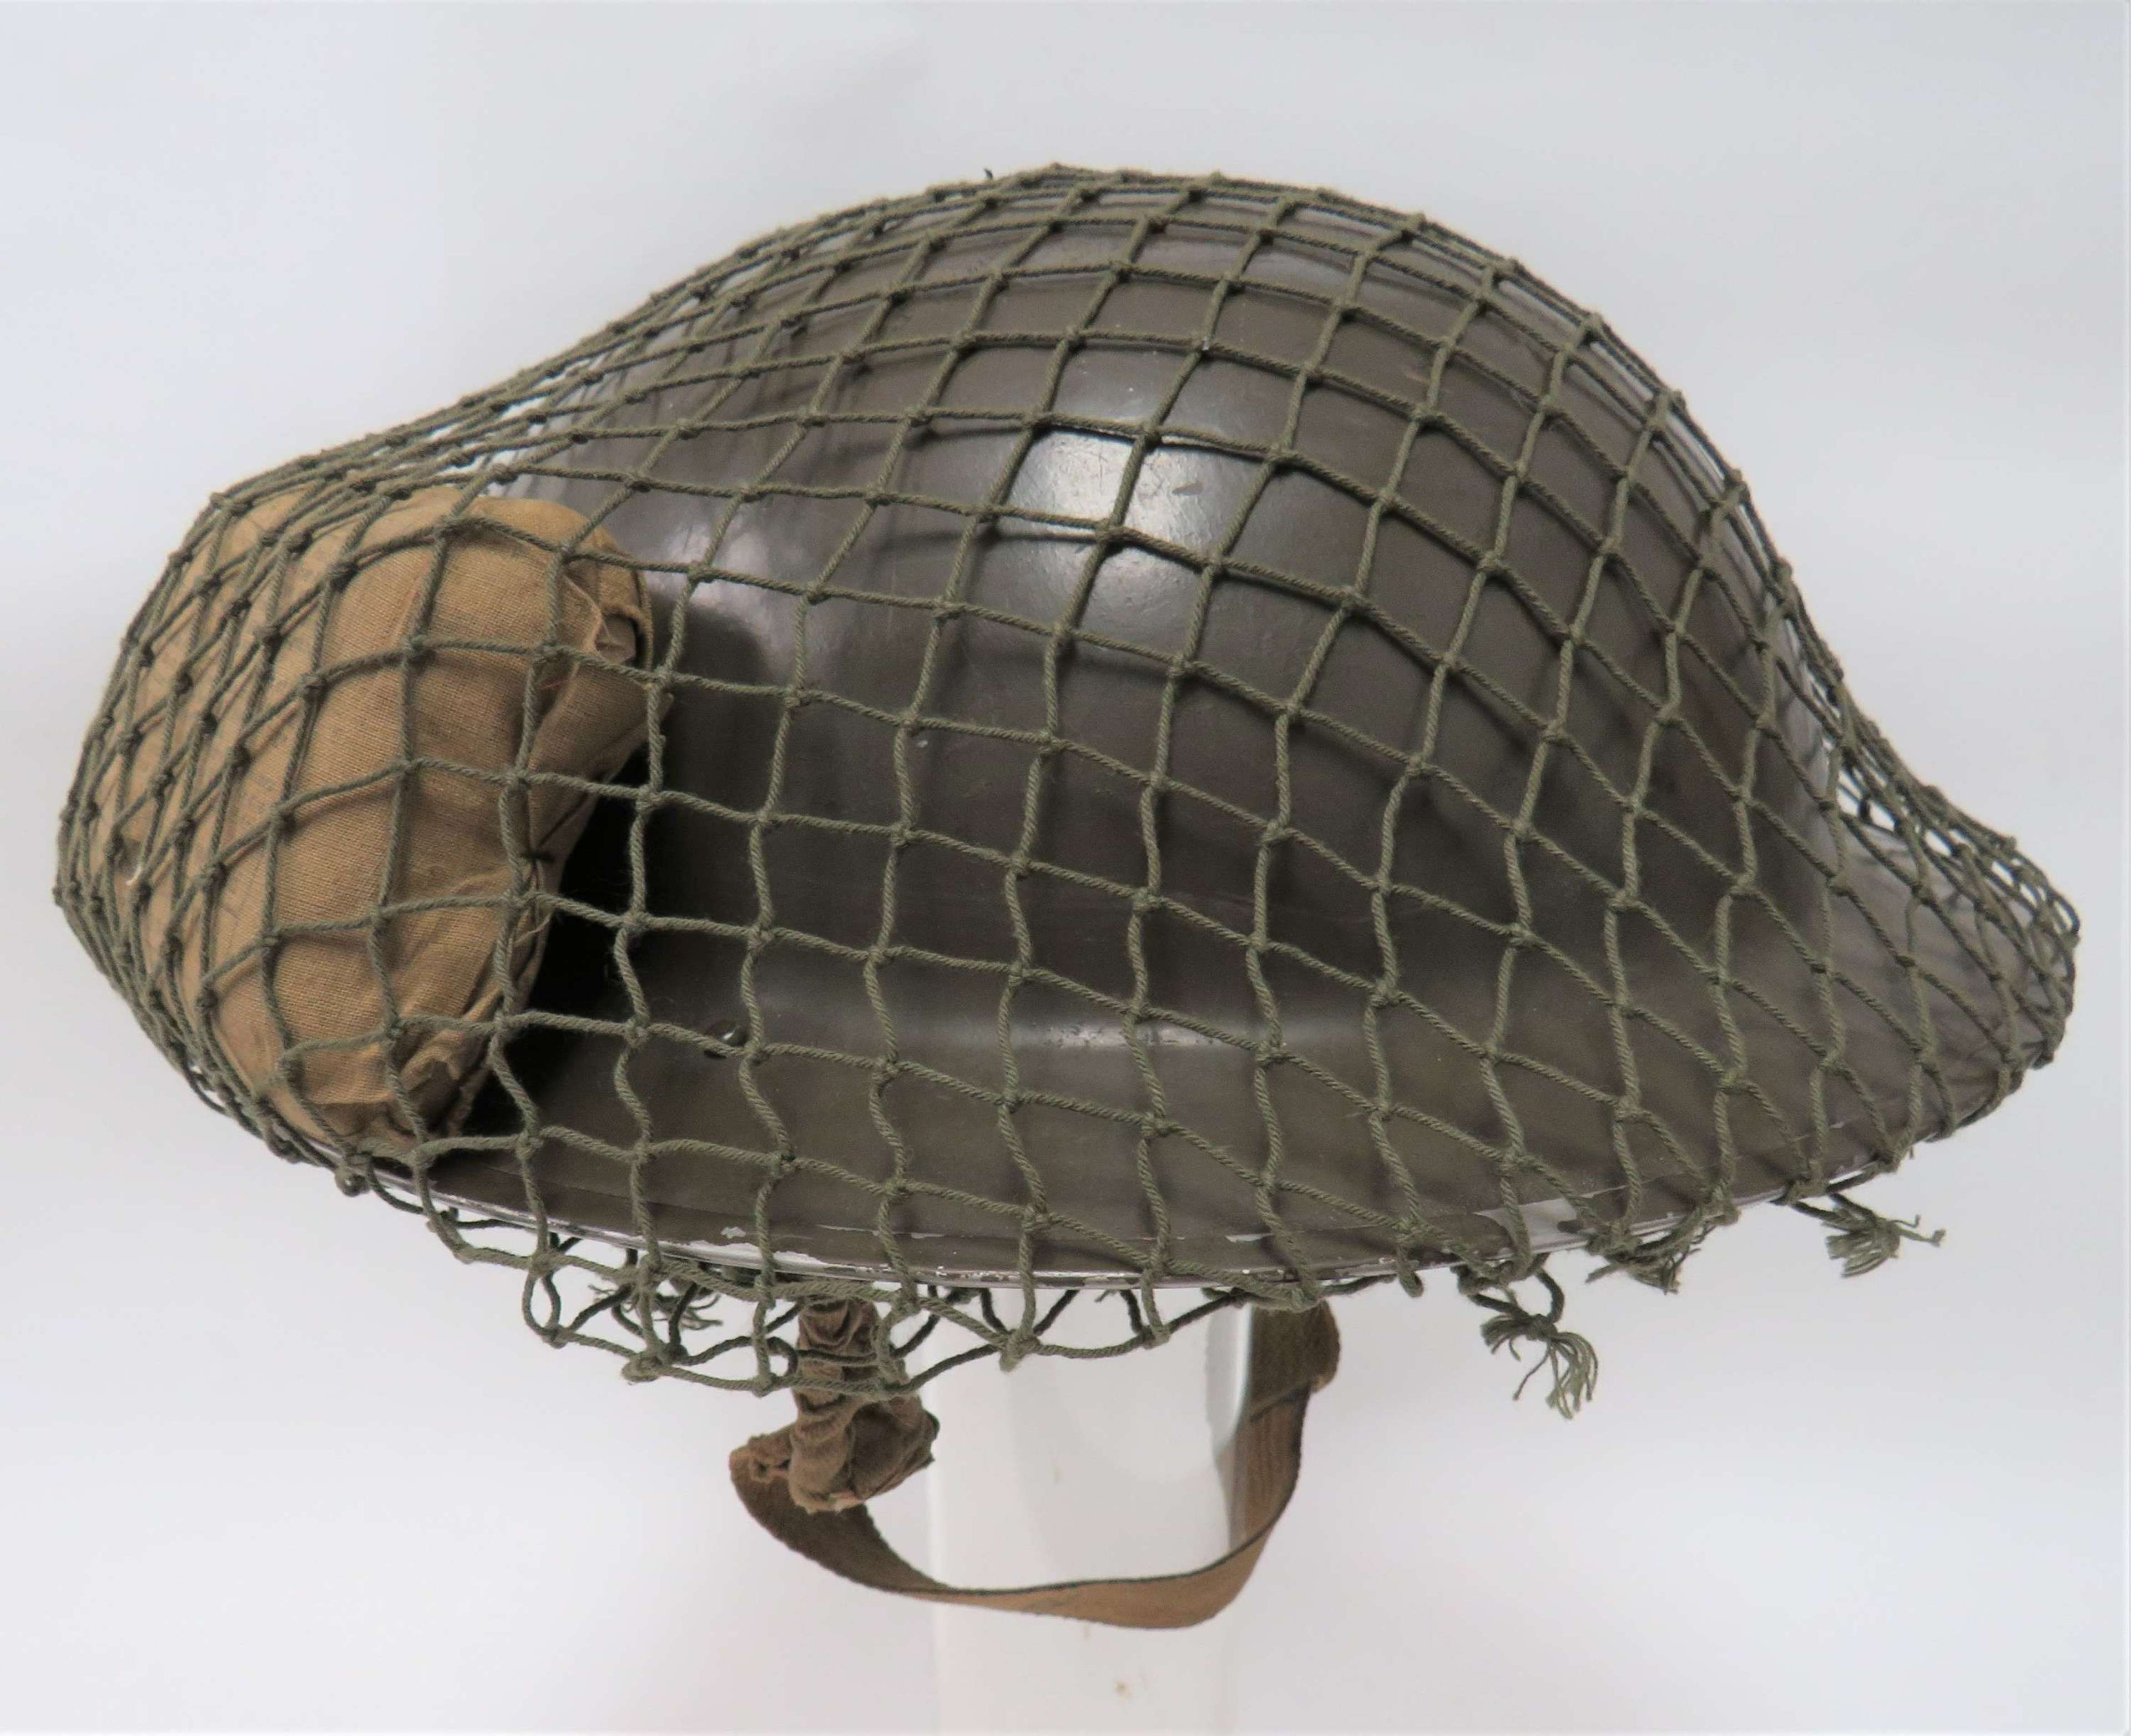 1938 Dated Steel Helmet and First Aid Dressing Typical for Dunkirk